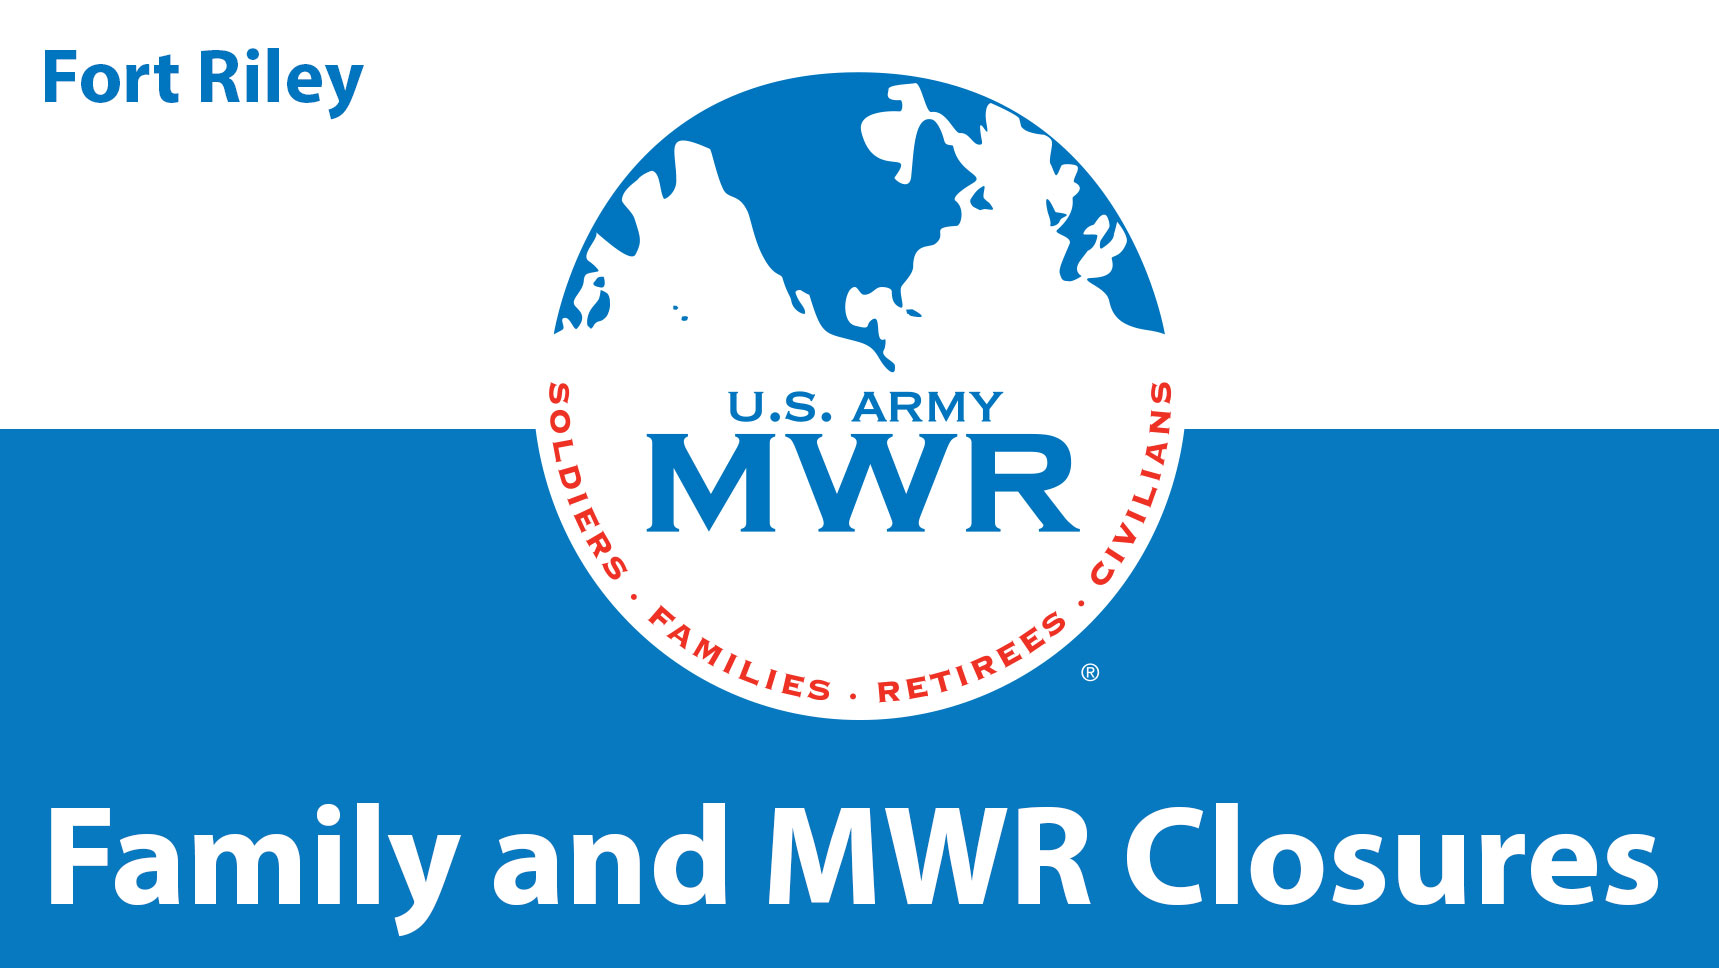 Fort Riley Family and MWR Closures